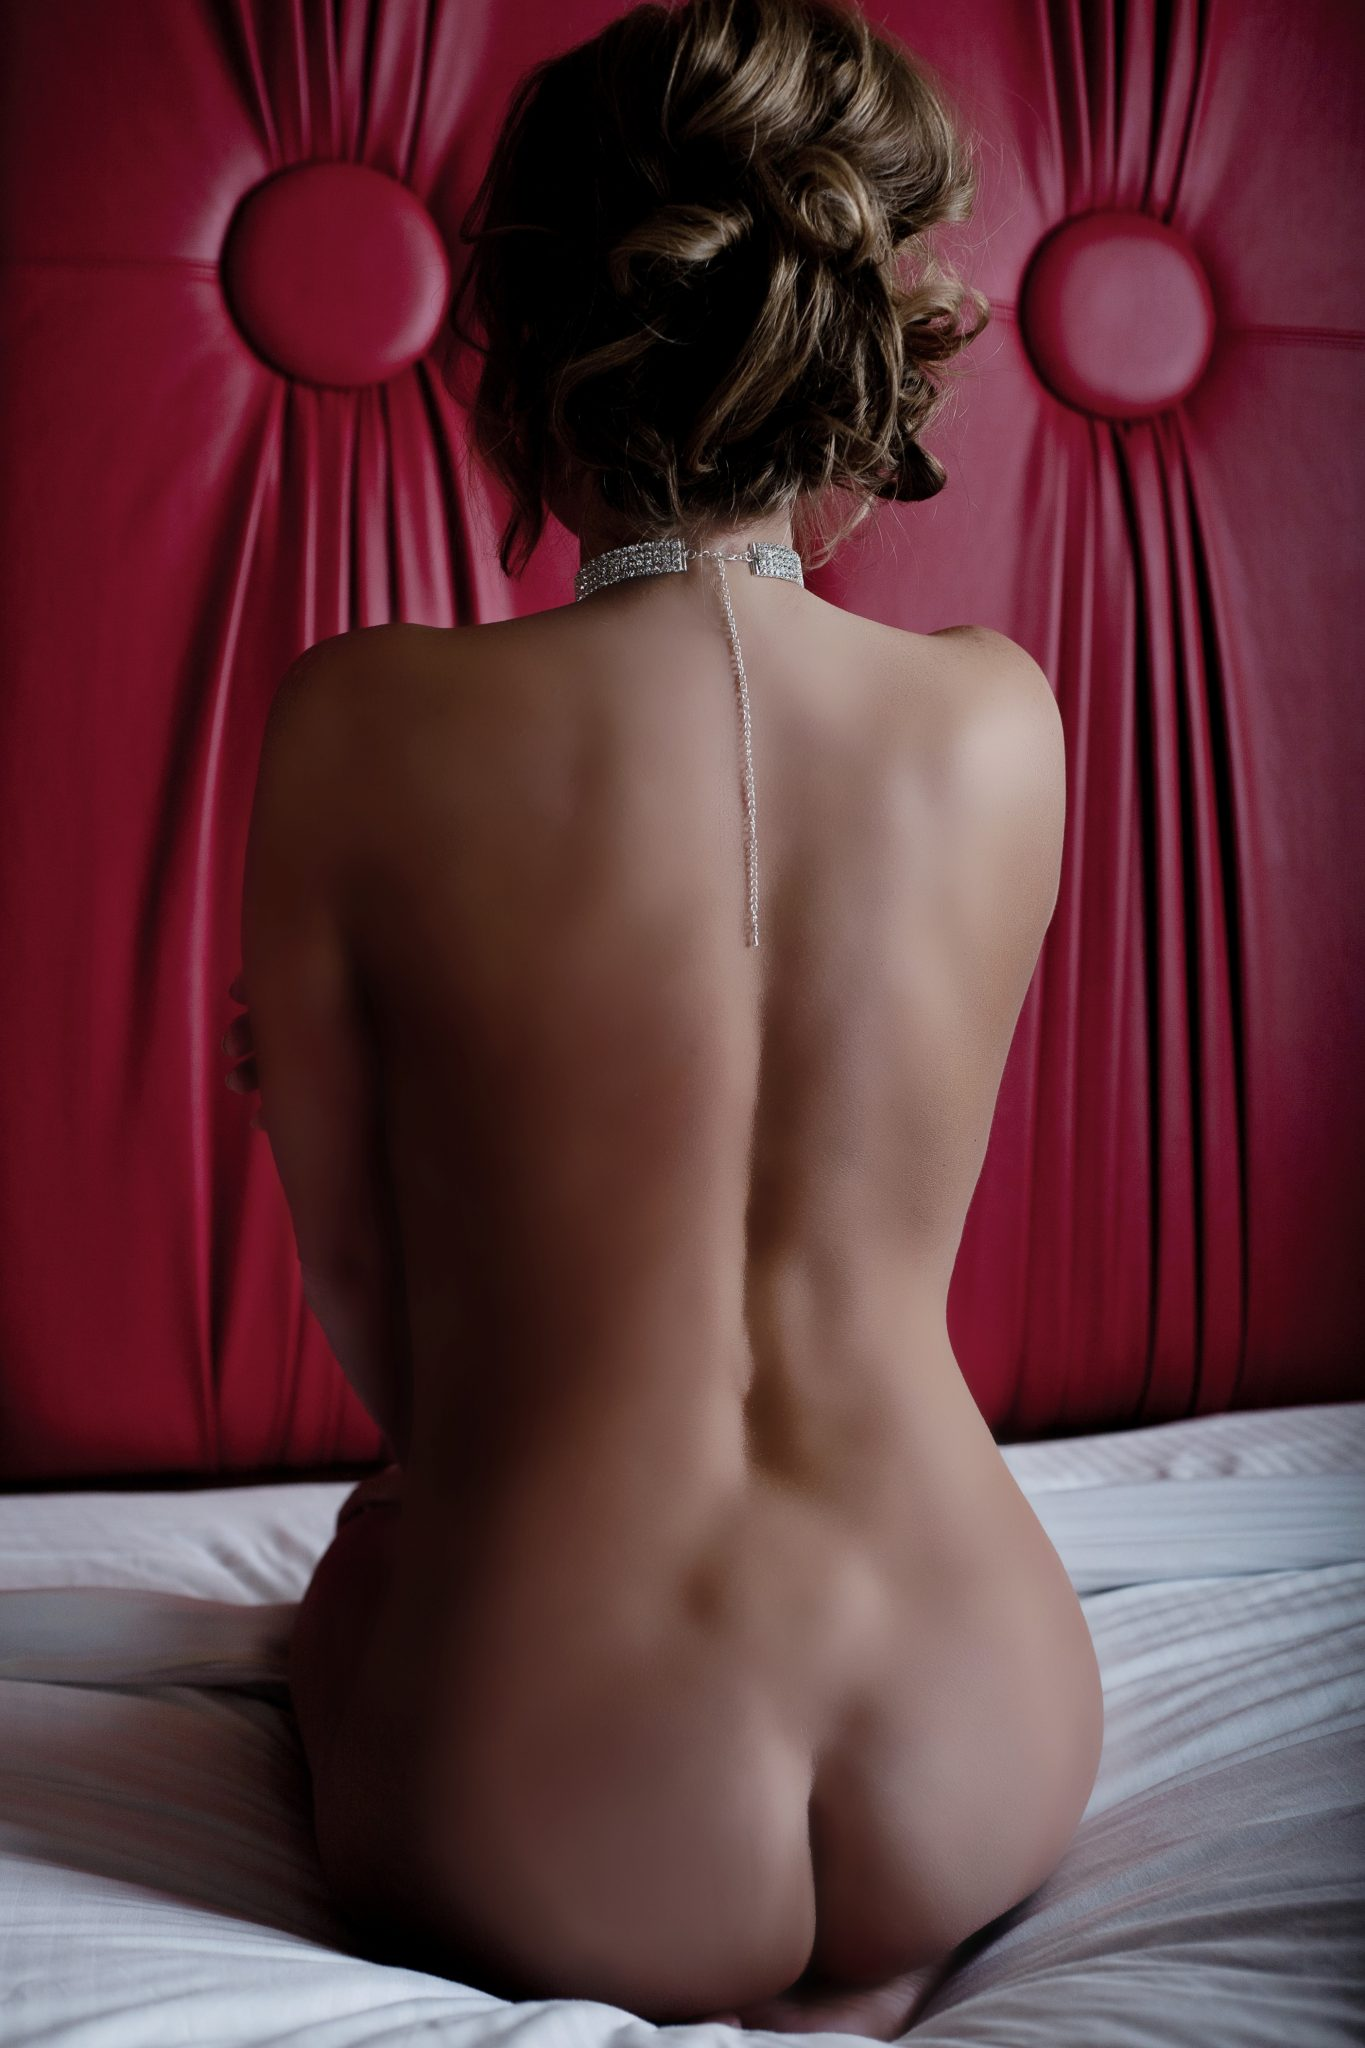 Fine art nude boudoir in Las Vegas, NV by Haute Shots.